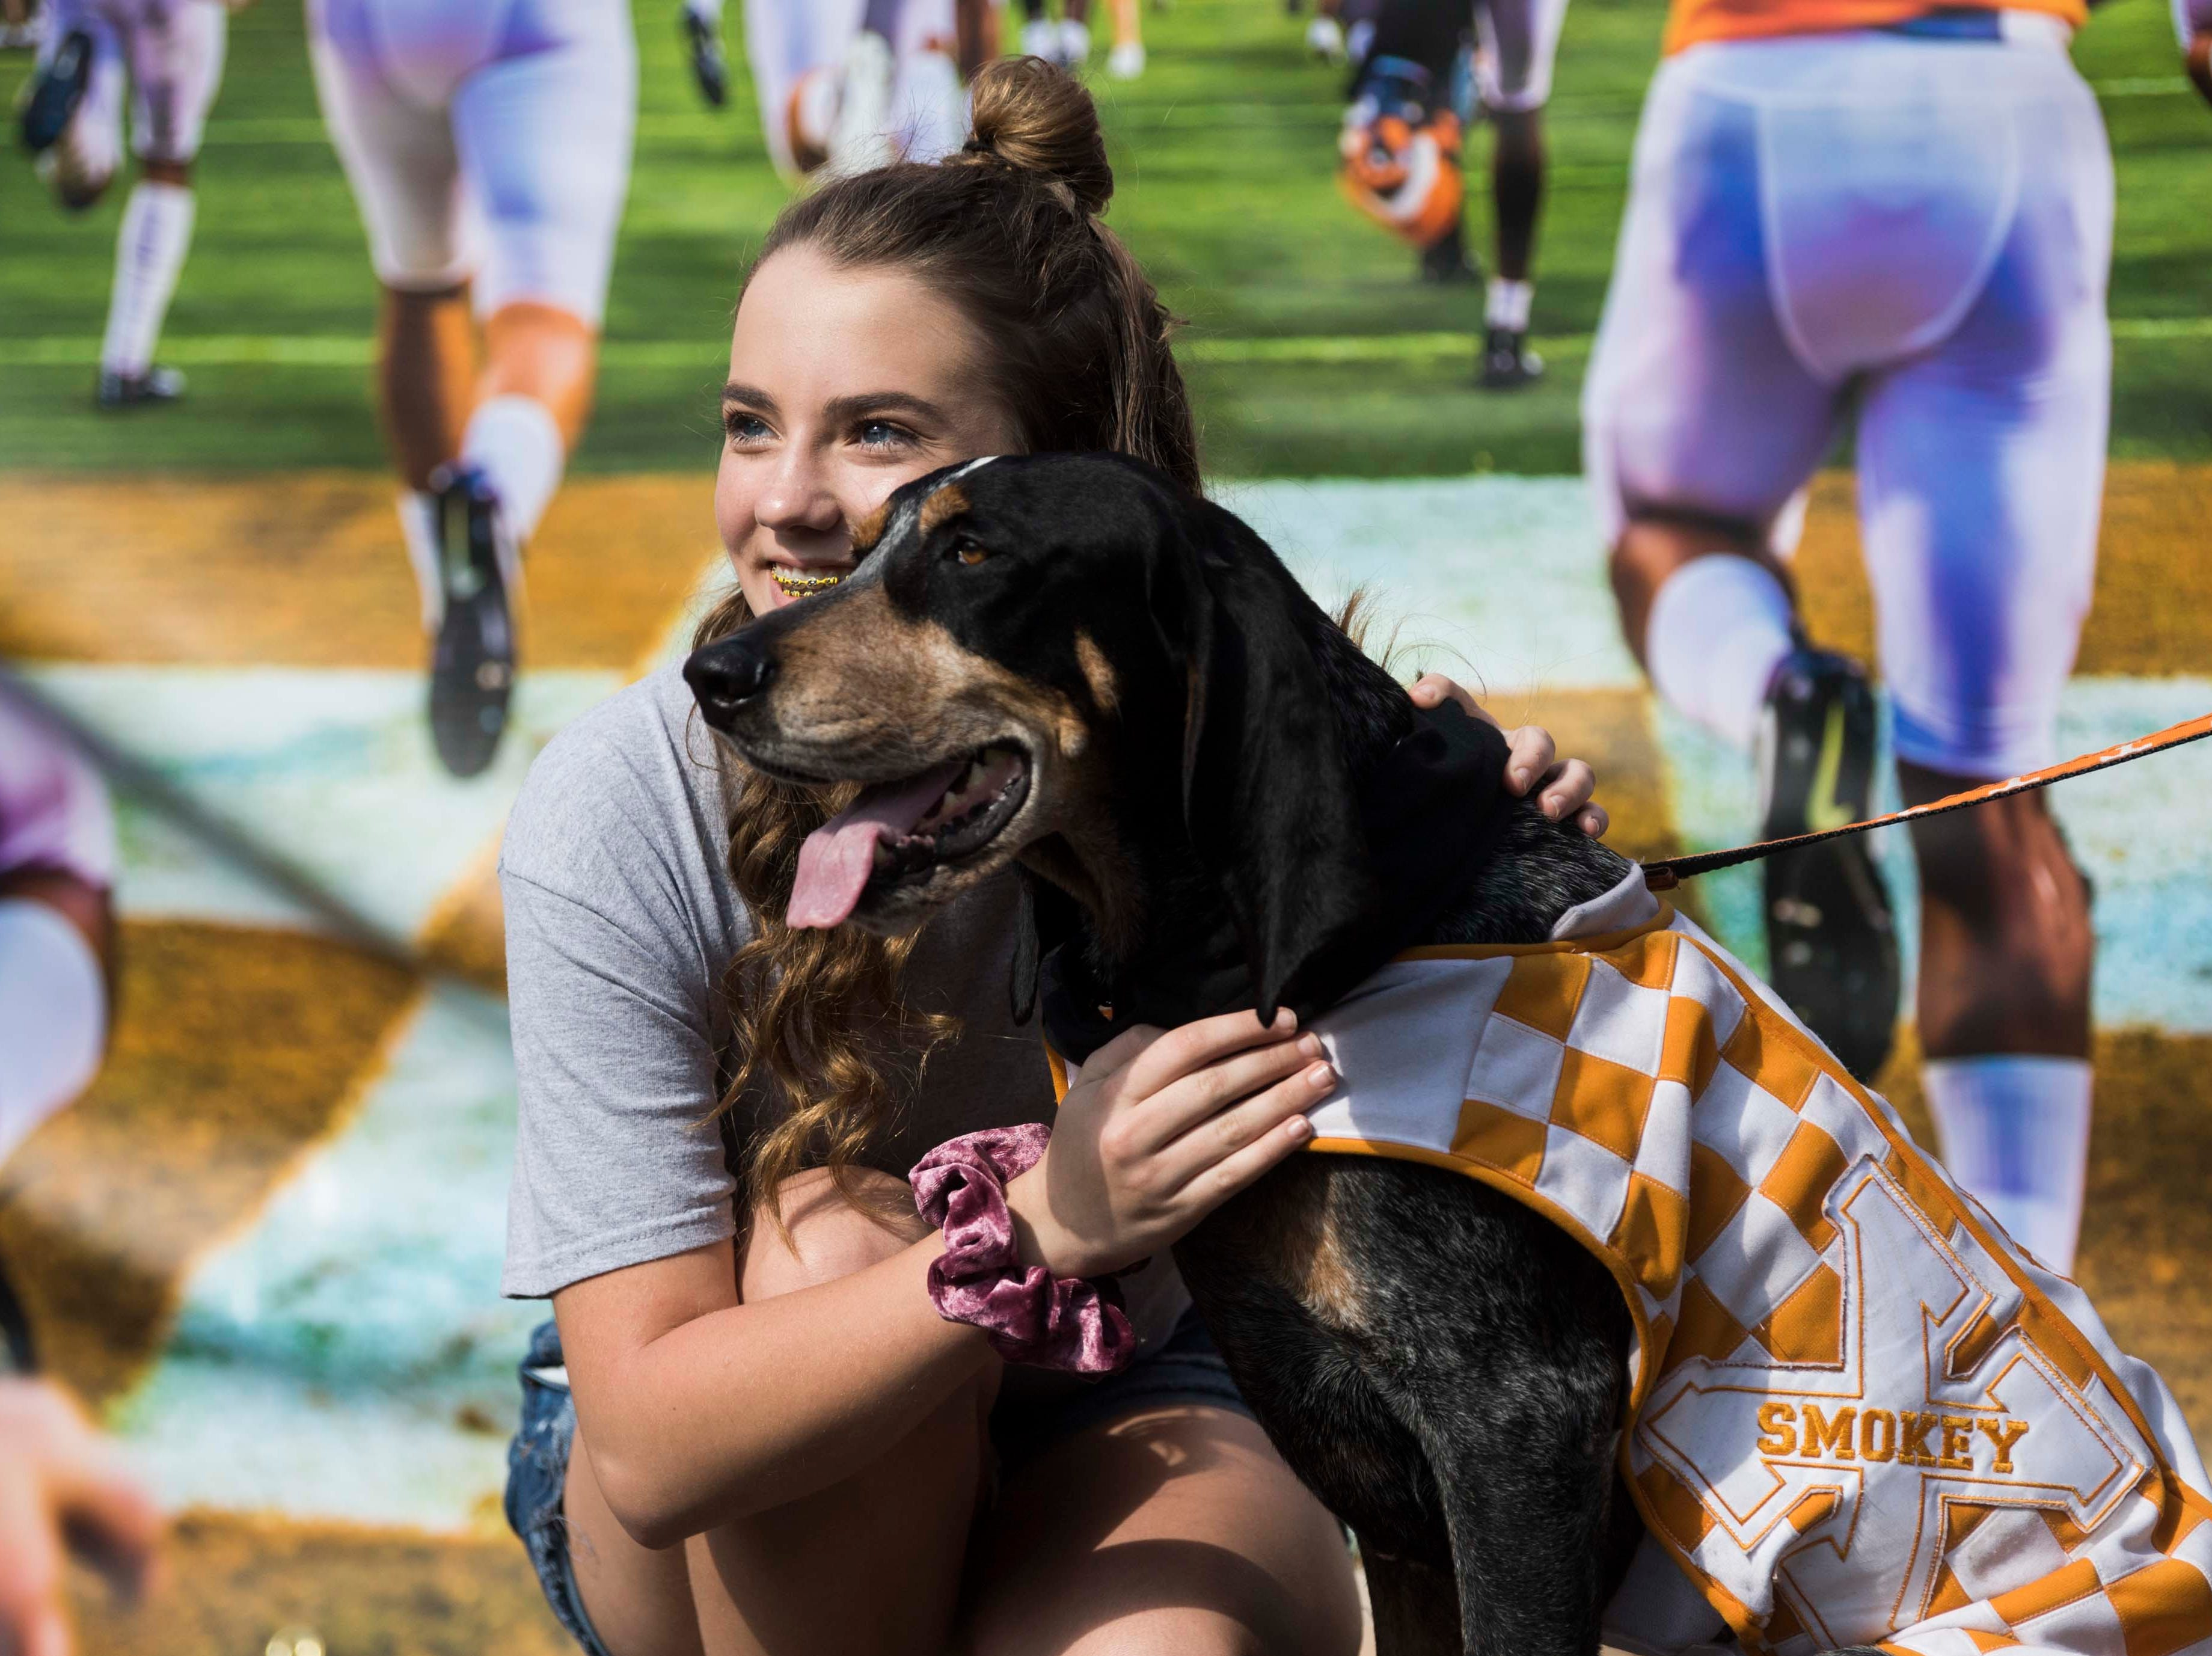 A fan poses with Smokey while waiting for the Vols spring game to begin outside Neyland Stadium in Knoxville Saturday, April 13, 2019.